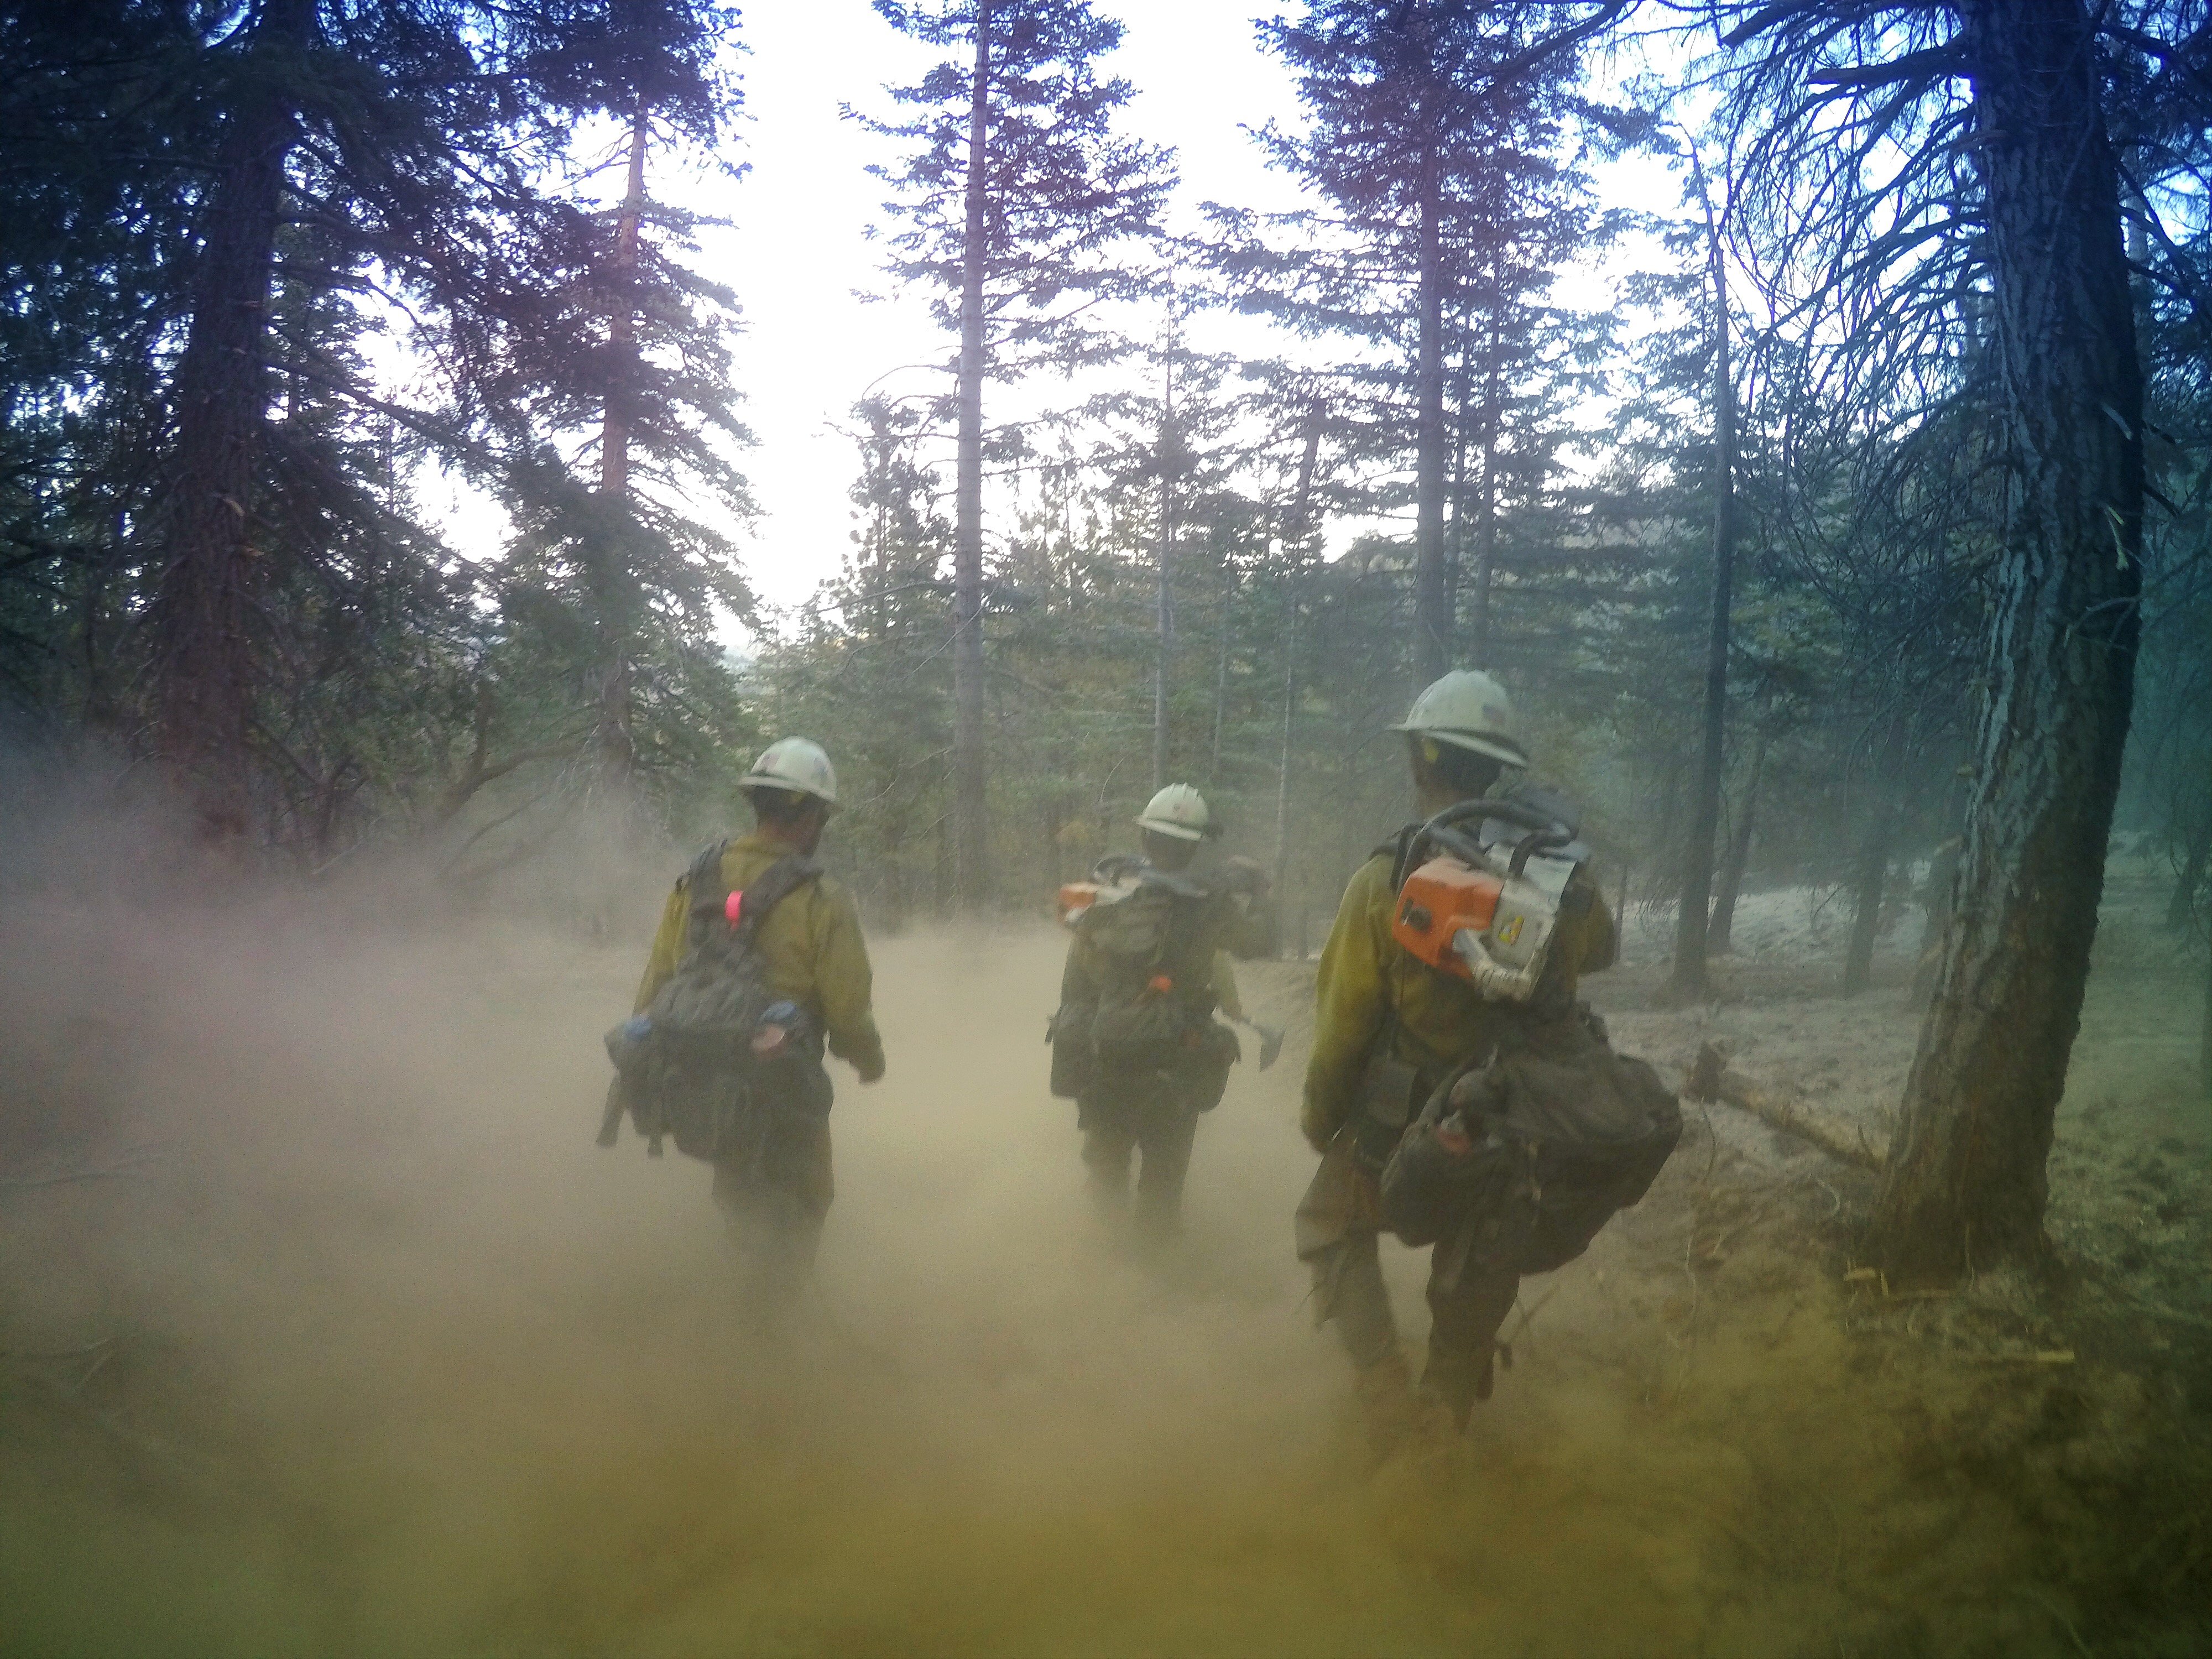 3 wildland firefighters walking through smoke taken by ExpertVoice Expert Gregg Boydston